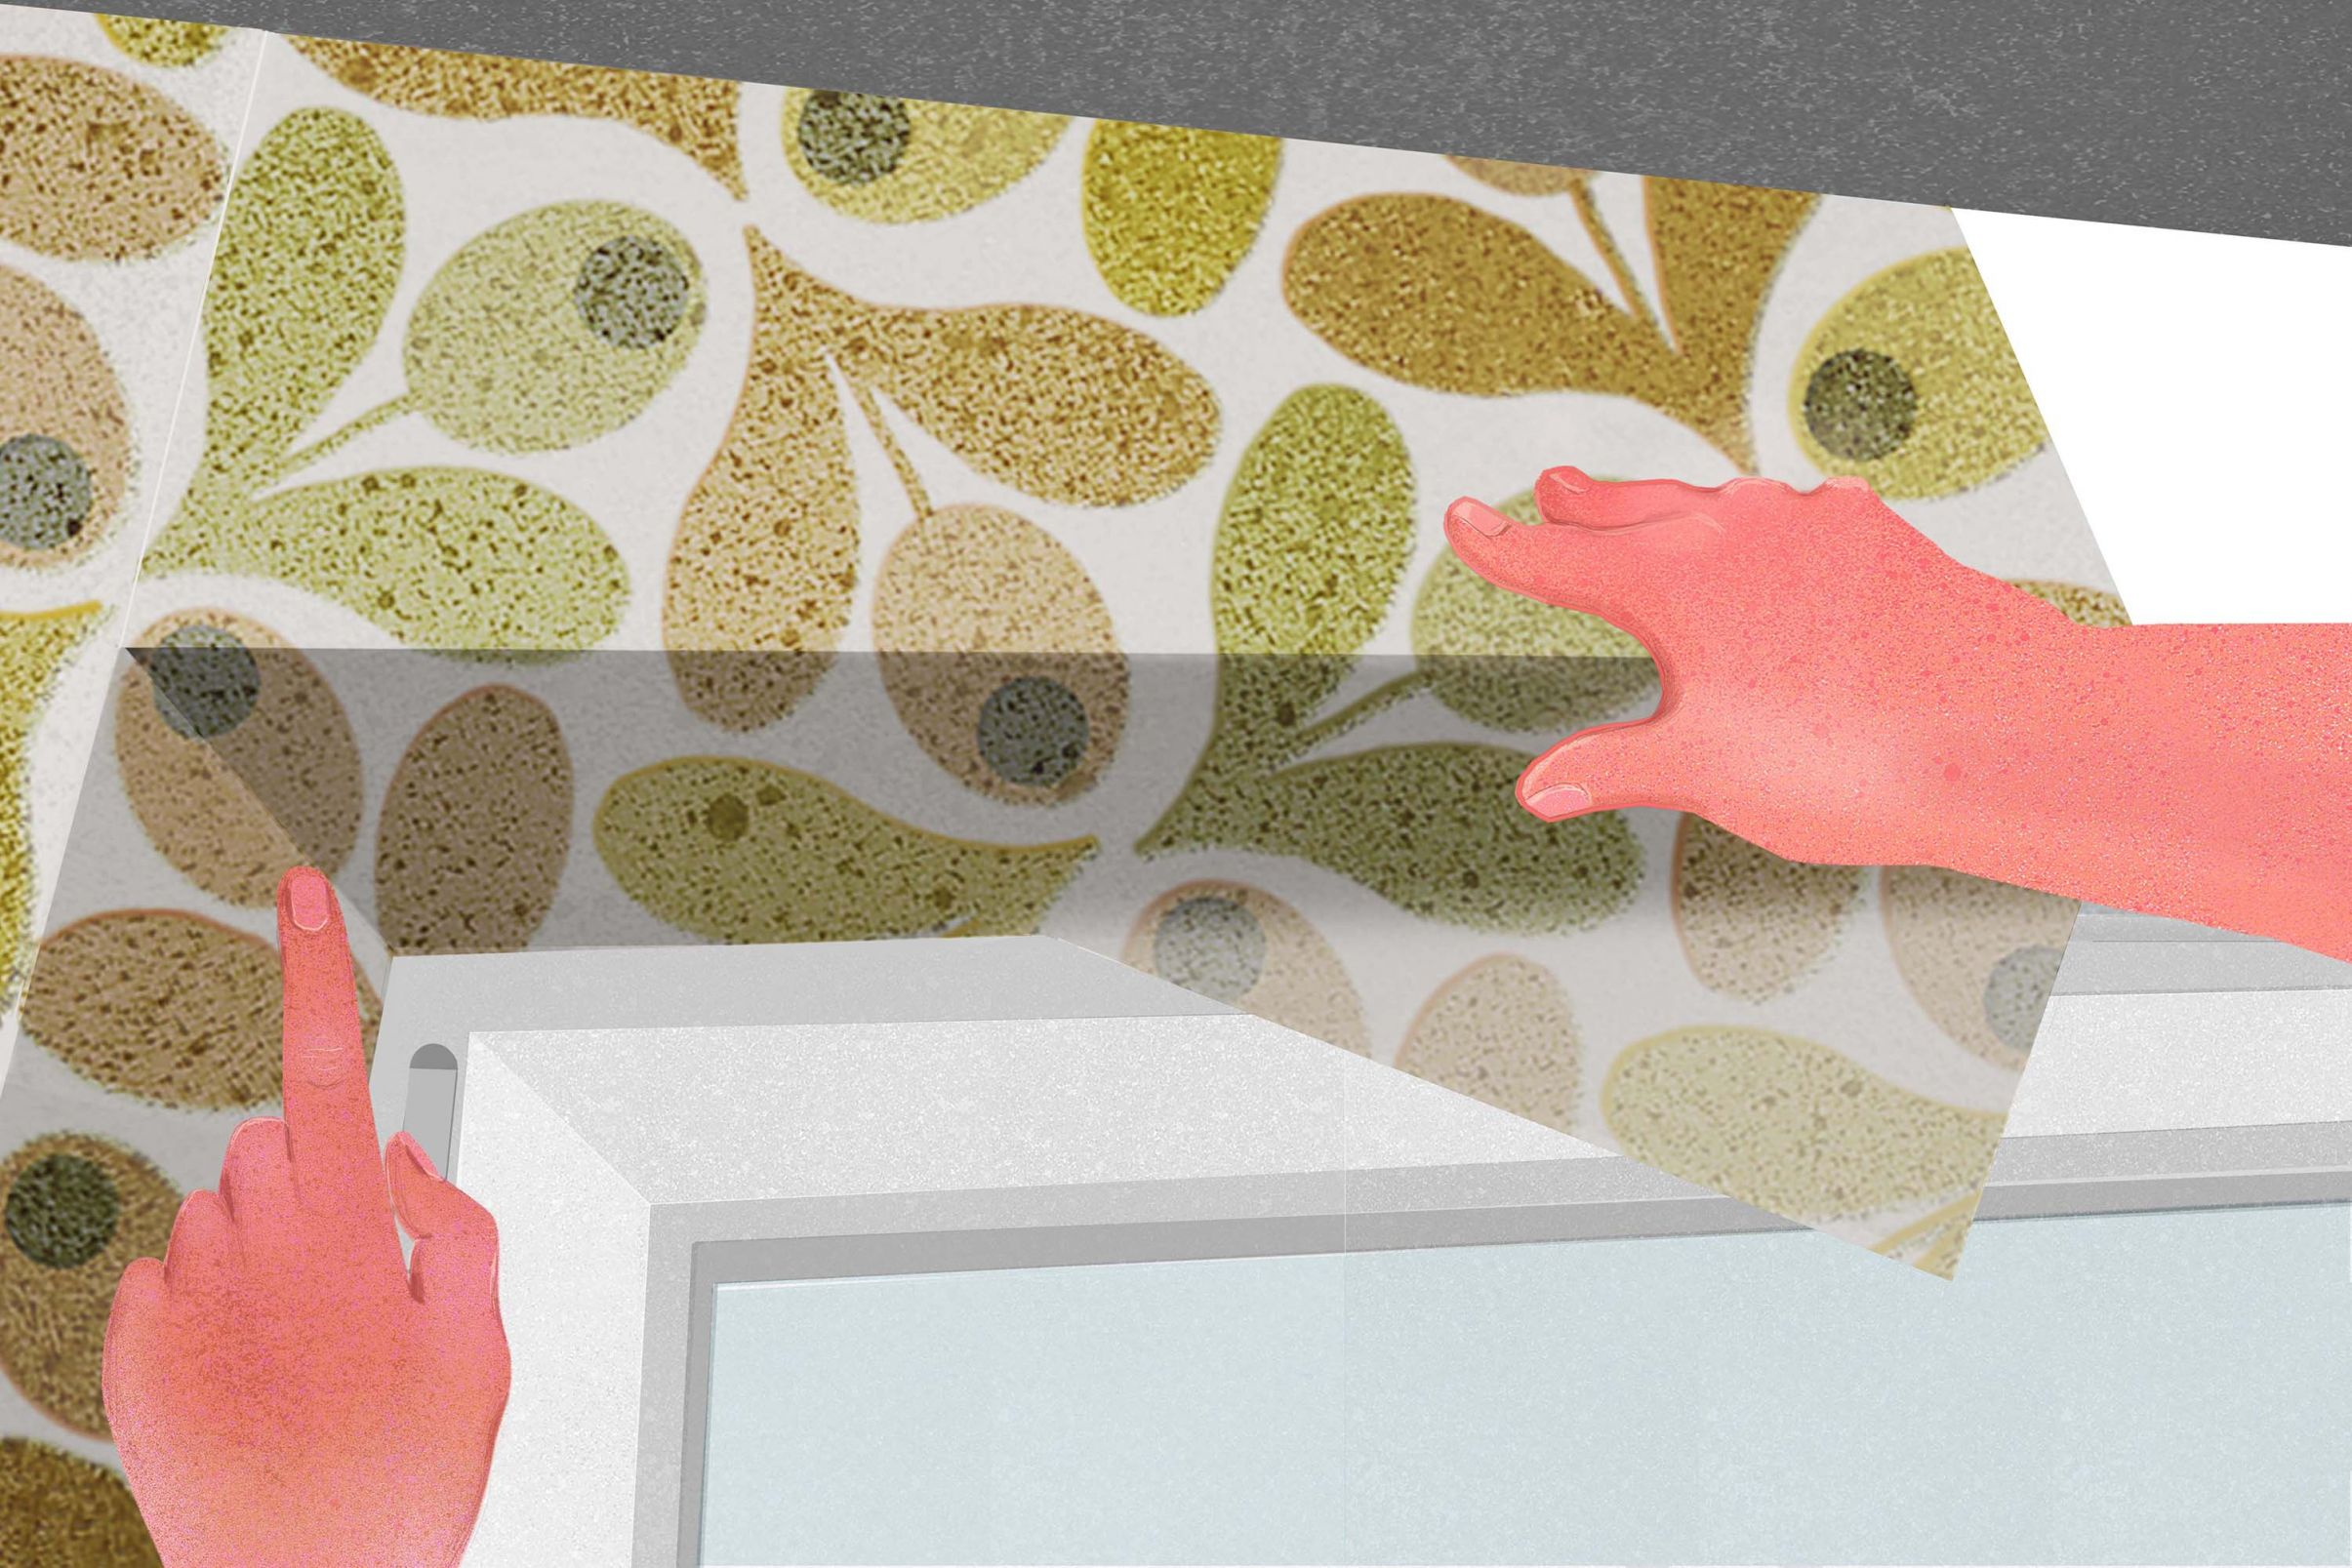 How-to-apply-wallpaper-around-windows-and-doors-Apply-the-first-length-of-wallpaper-above-the-window-with-overlap